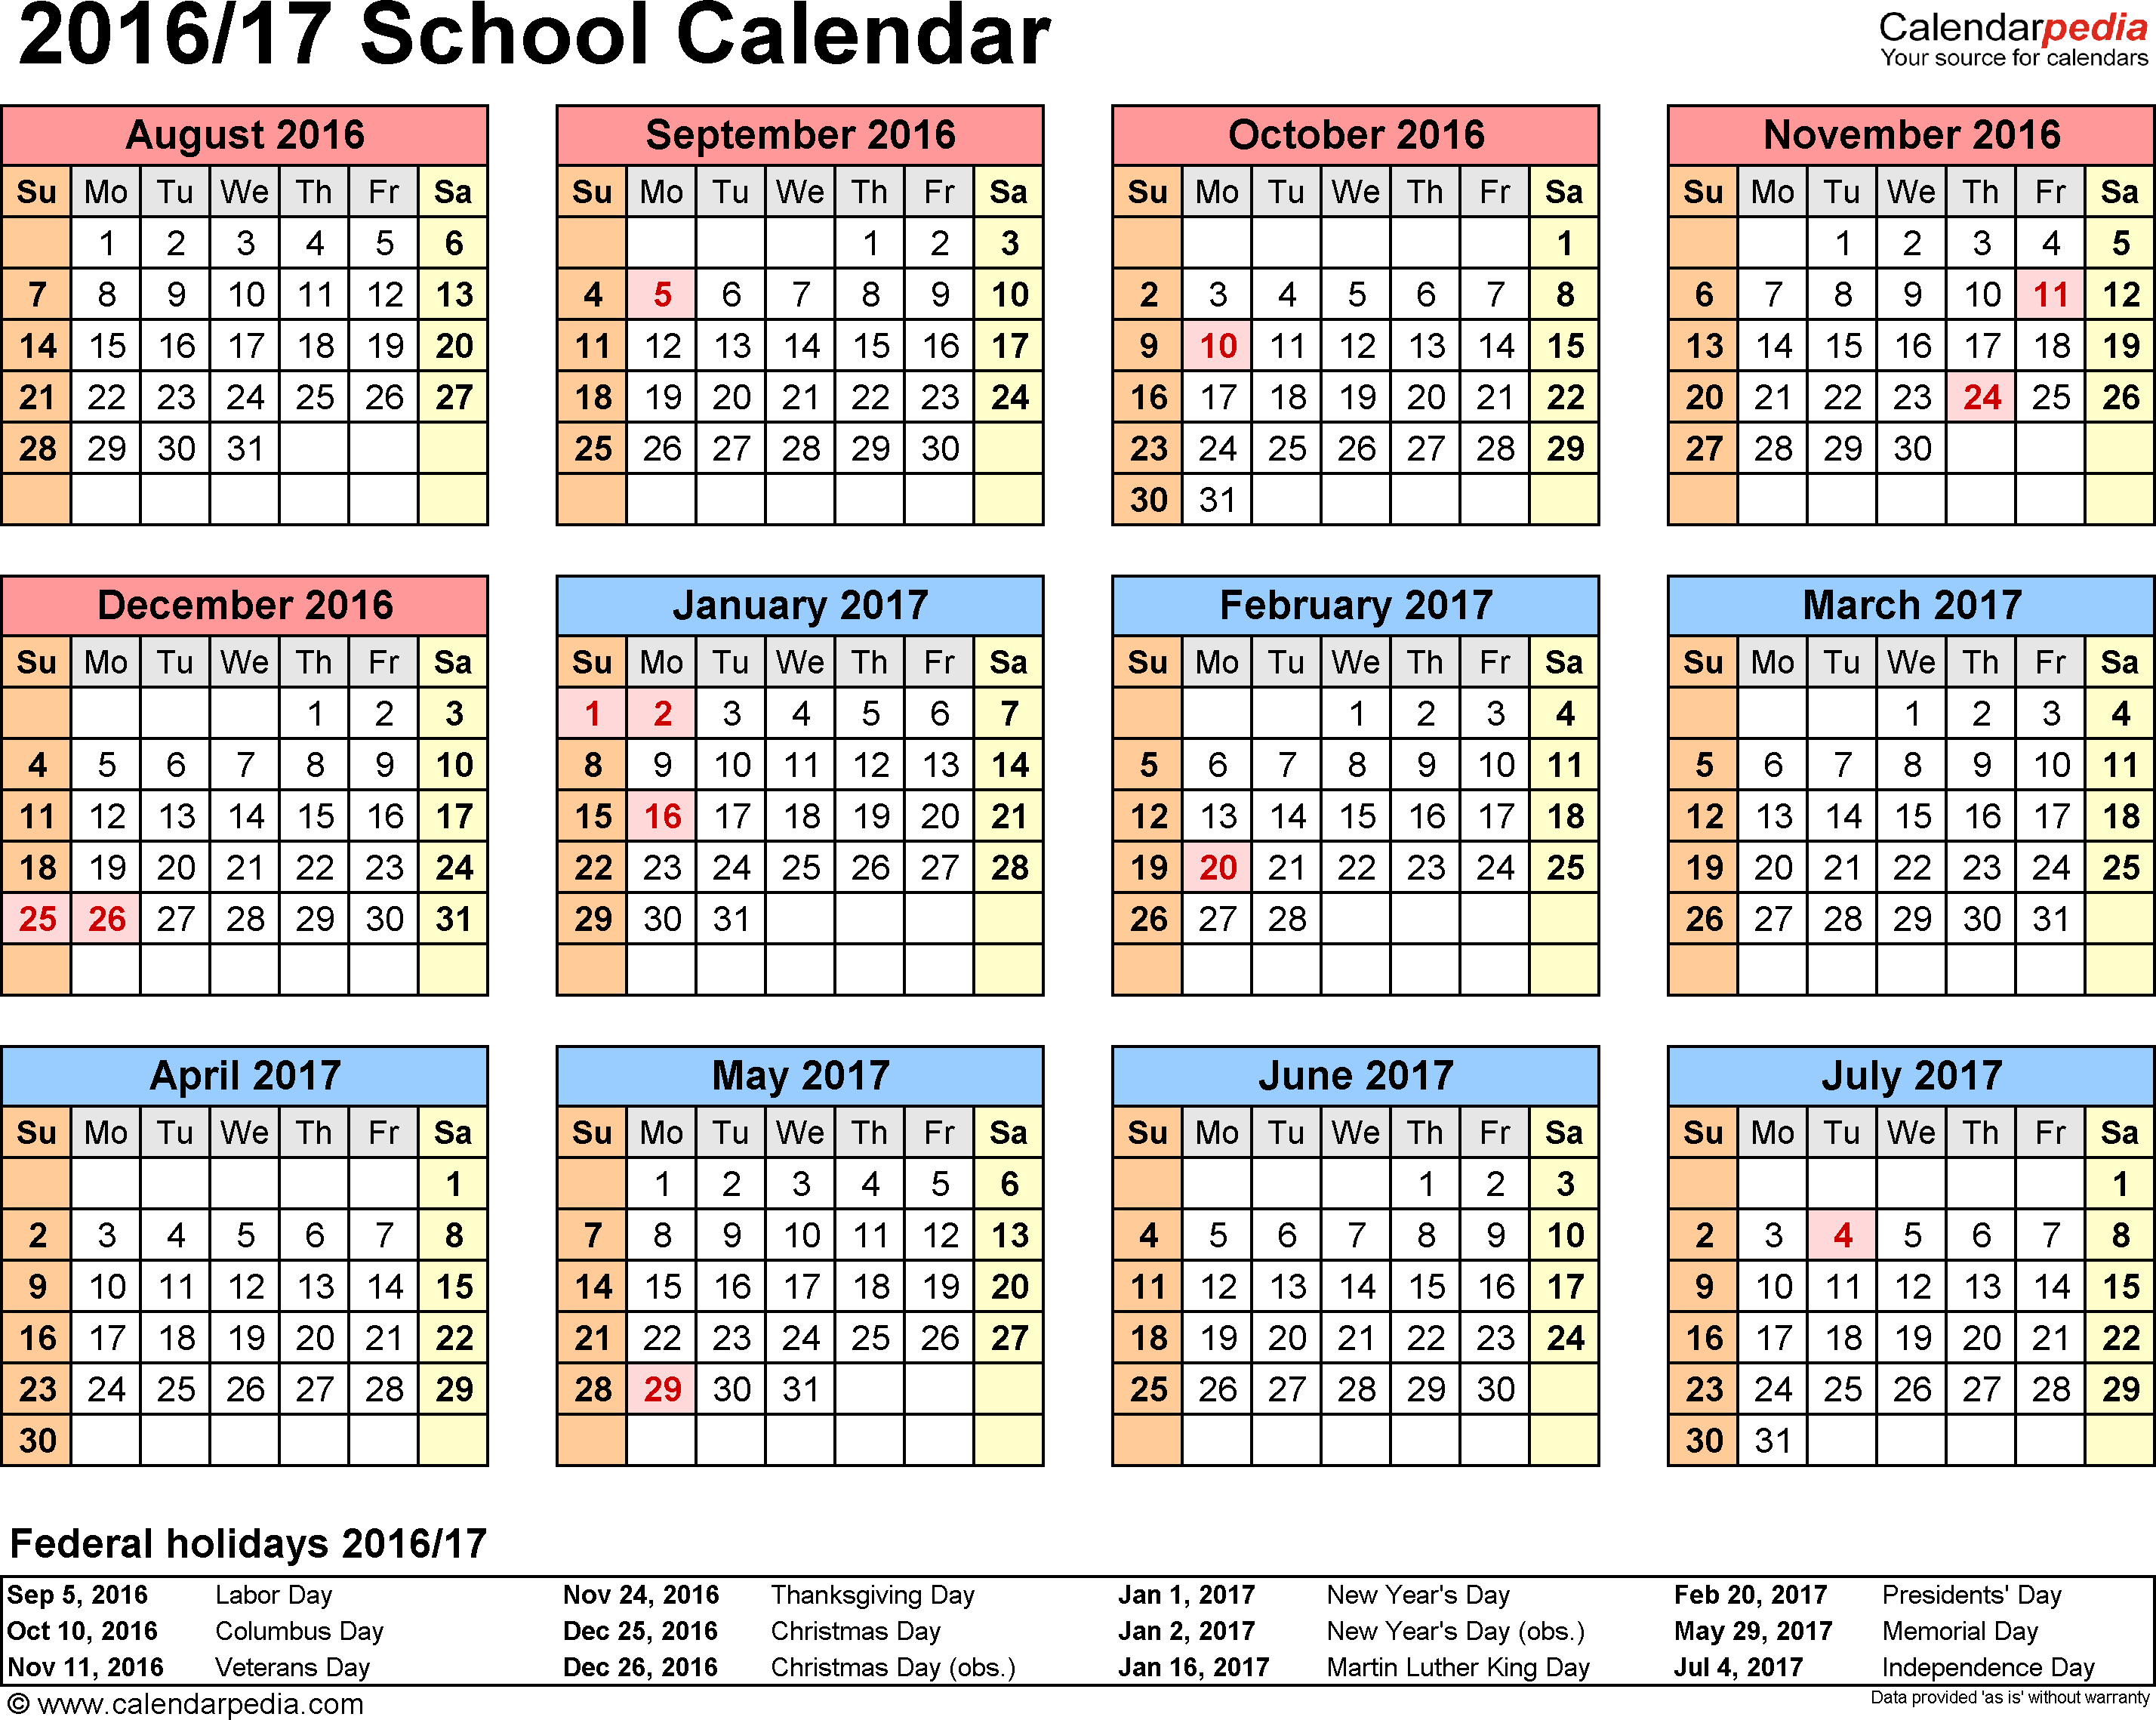 School calendars 2016/2017 as free printable Word templates